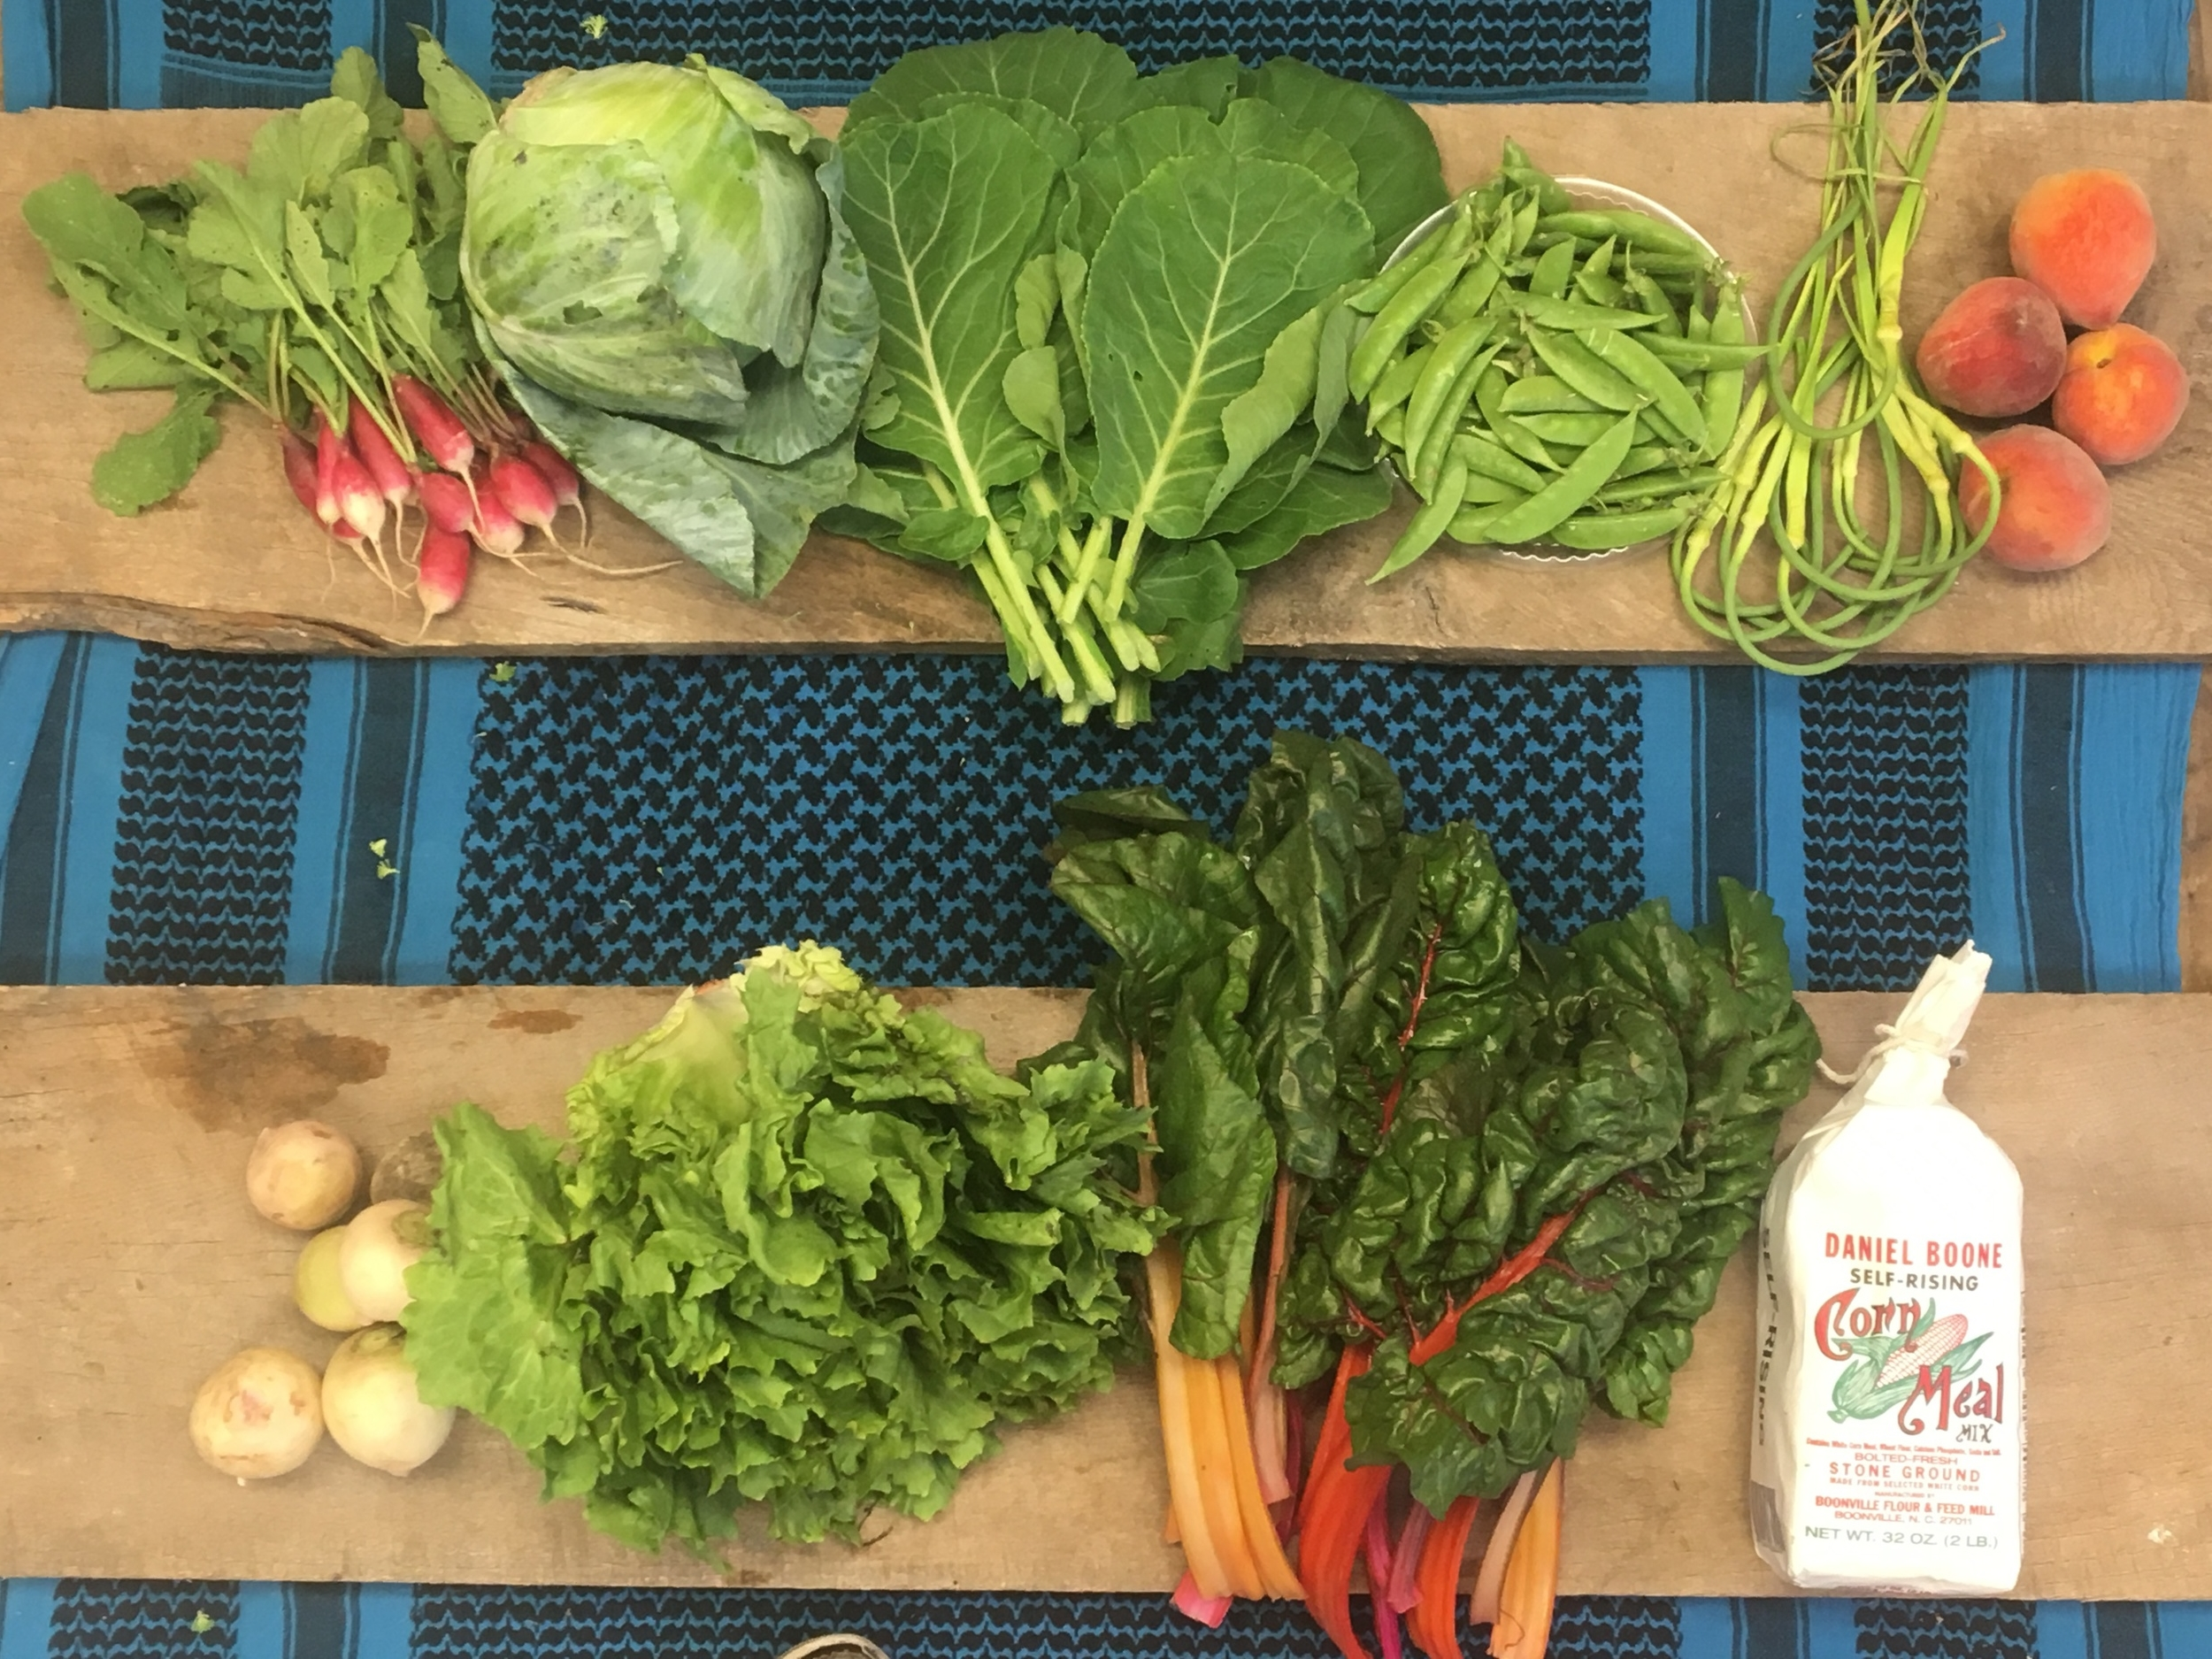 Southern Comfort Family~ French breakfast radishes, Green cabbage, Grab bag (Collards shown. Also available, borage, yellow squash, nasturtiums, dandelion greens, or greasy beans.) snap peas, garlic scapes, peaches, watermelon radishes, escarole, swiss chard, and Daniel Boone cornmeal.